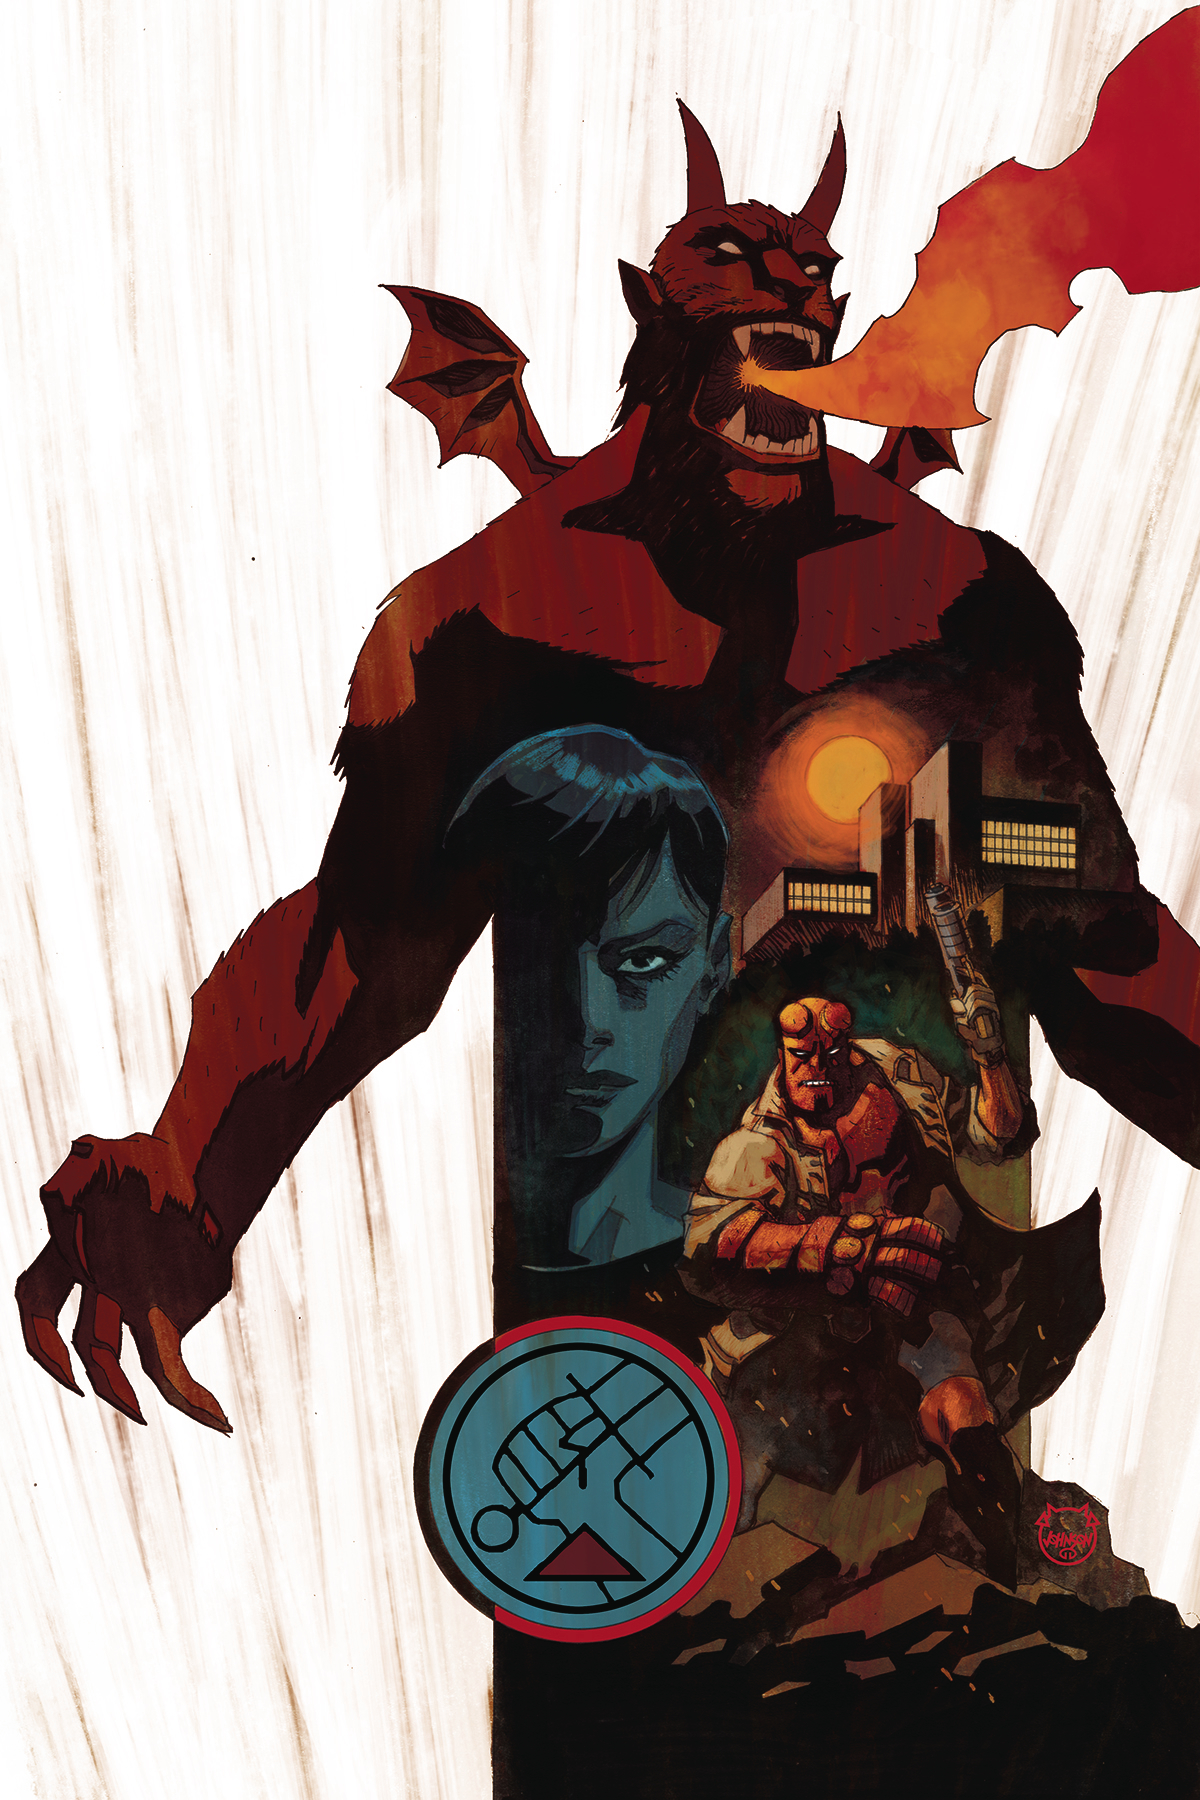 HELLBOY AND BPRD 1956 #4 (OF 5)